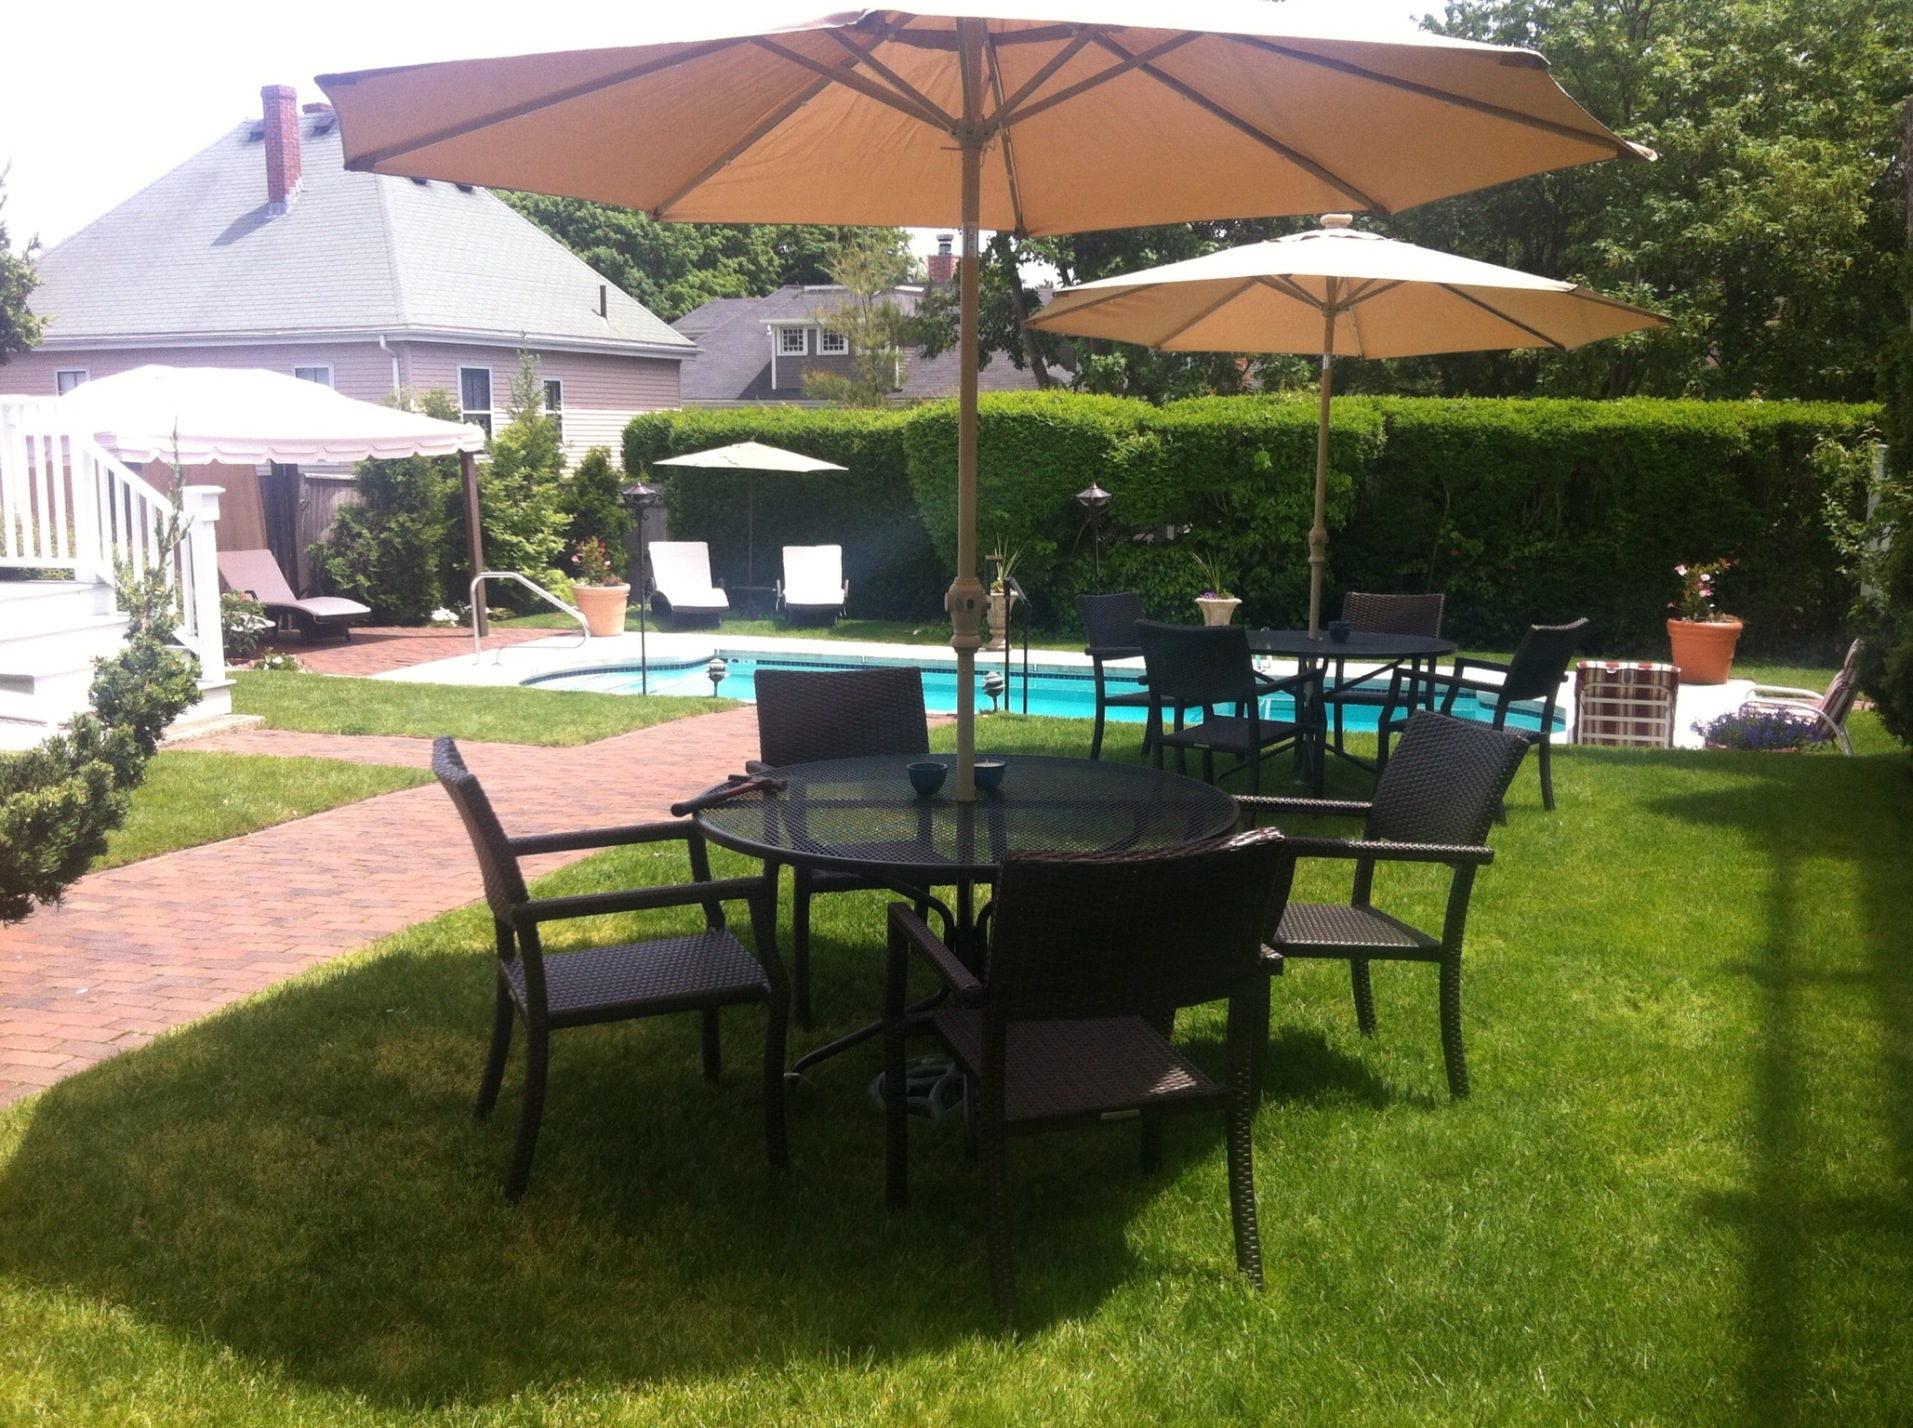 Guests Enjoy Private Tables At Harbor Light Inn In Marblehead, MA